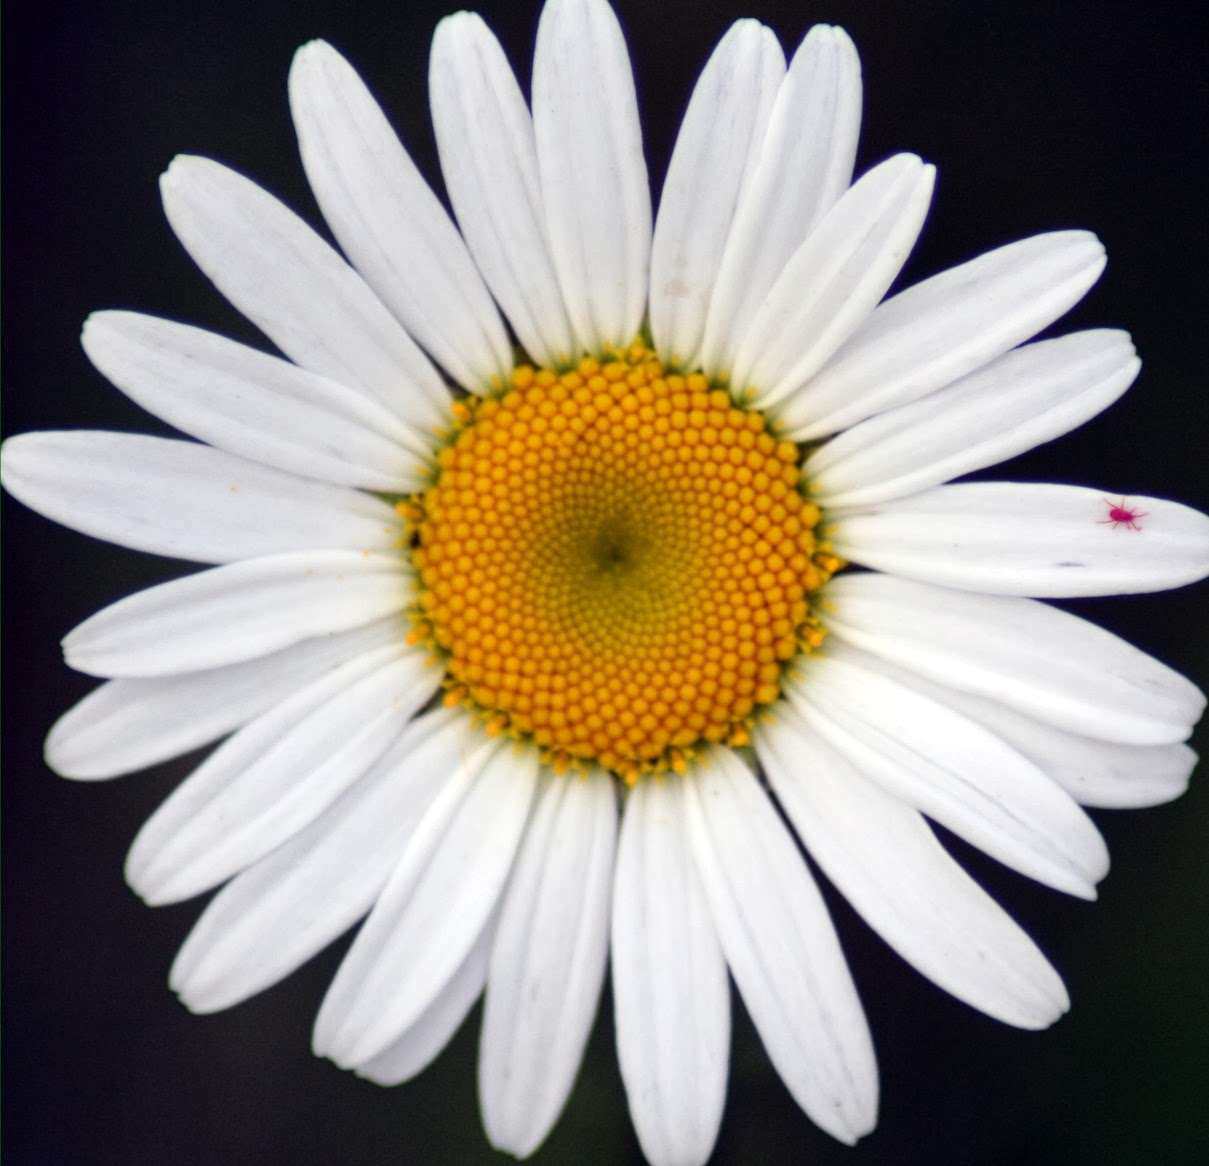 THE FLOWER GARDEN : ~ ~ Daisy Flower Meaning